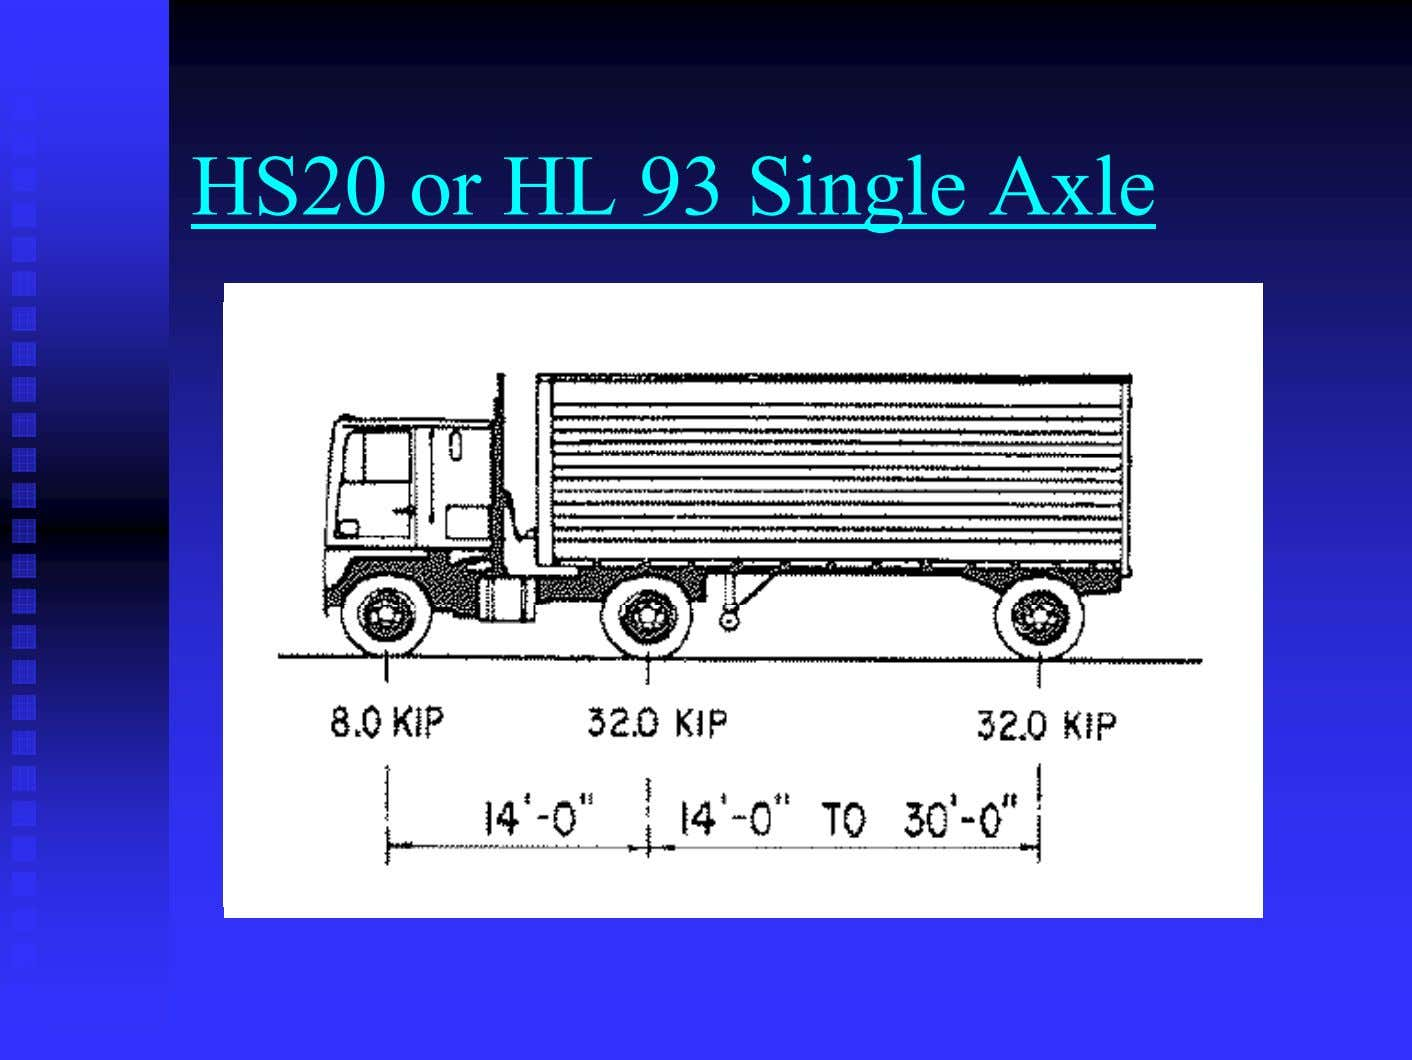 HS20 or HL 93 Single Axle